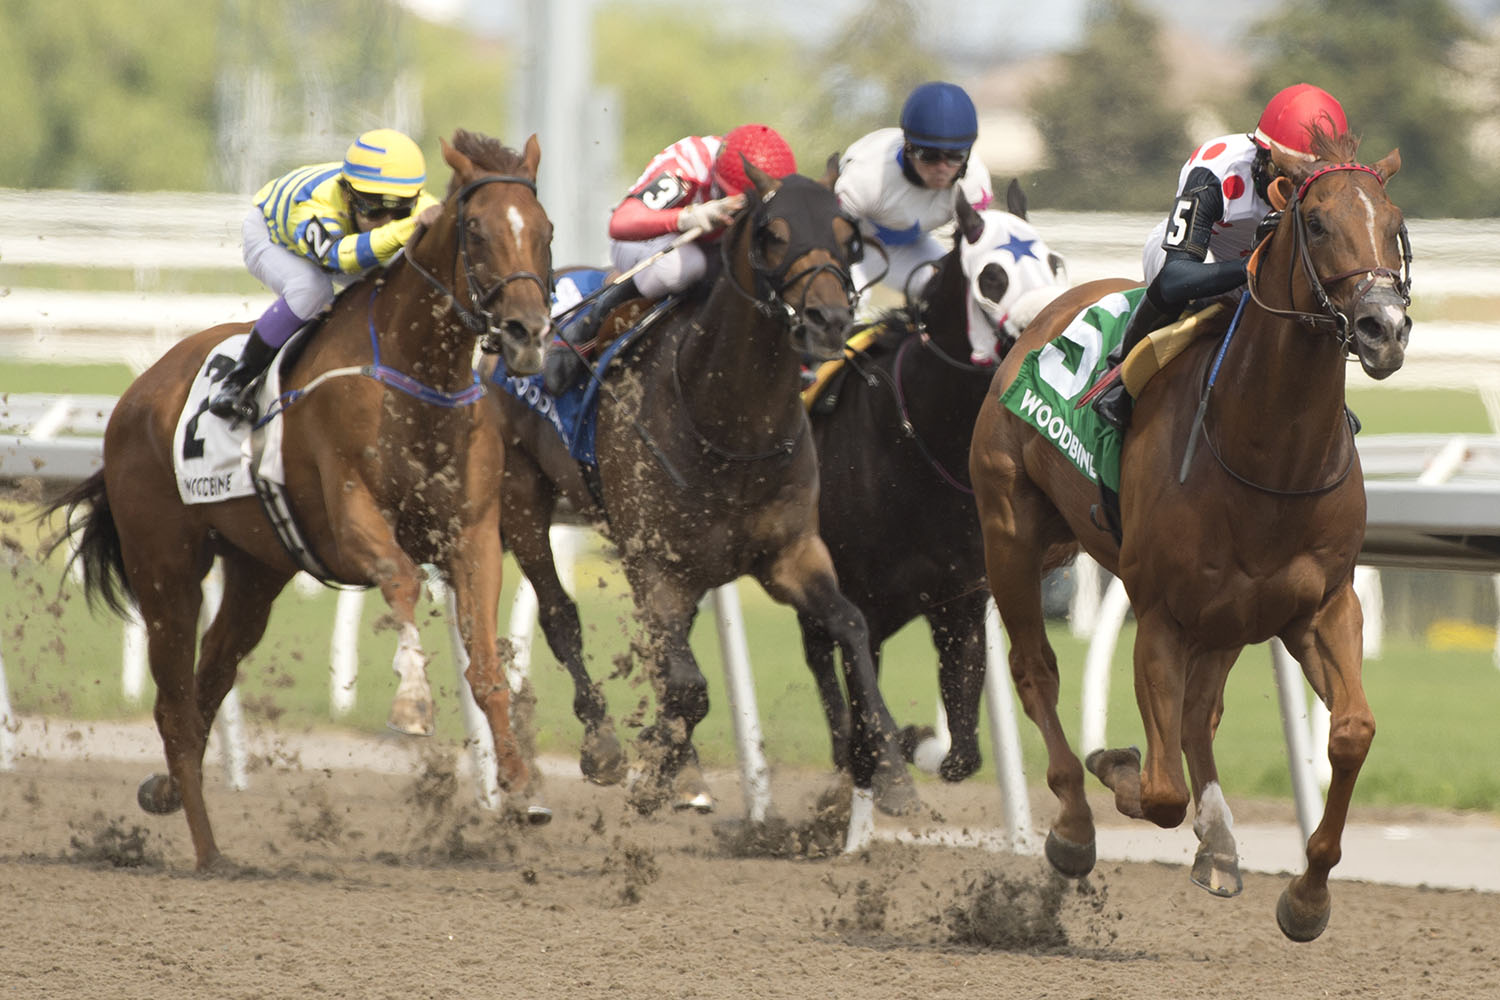 Souper Stonehenge and jockey Patrick Husbands winning the $150,000 Jacques Cartier Stakes (Grade 3) on Sunday, June 20 at Woodbine Racetrack. (Michael Burns Photo)